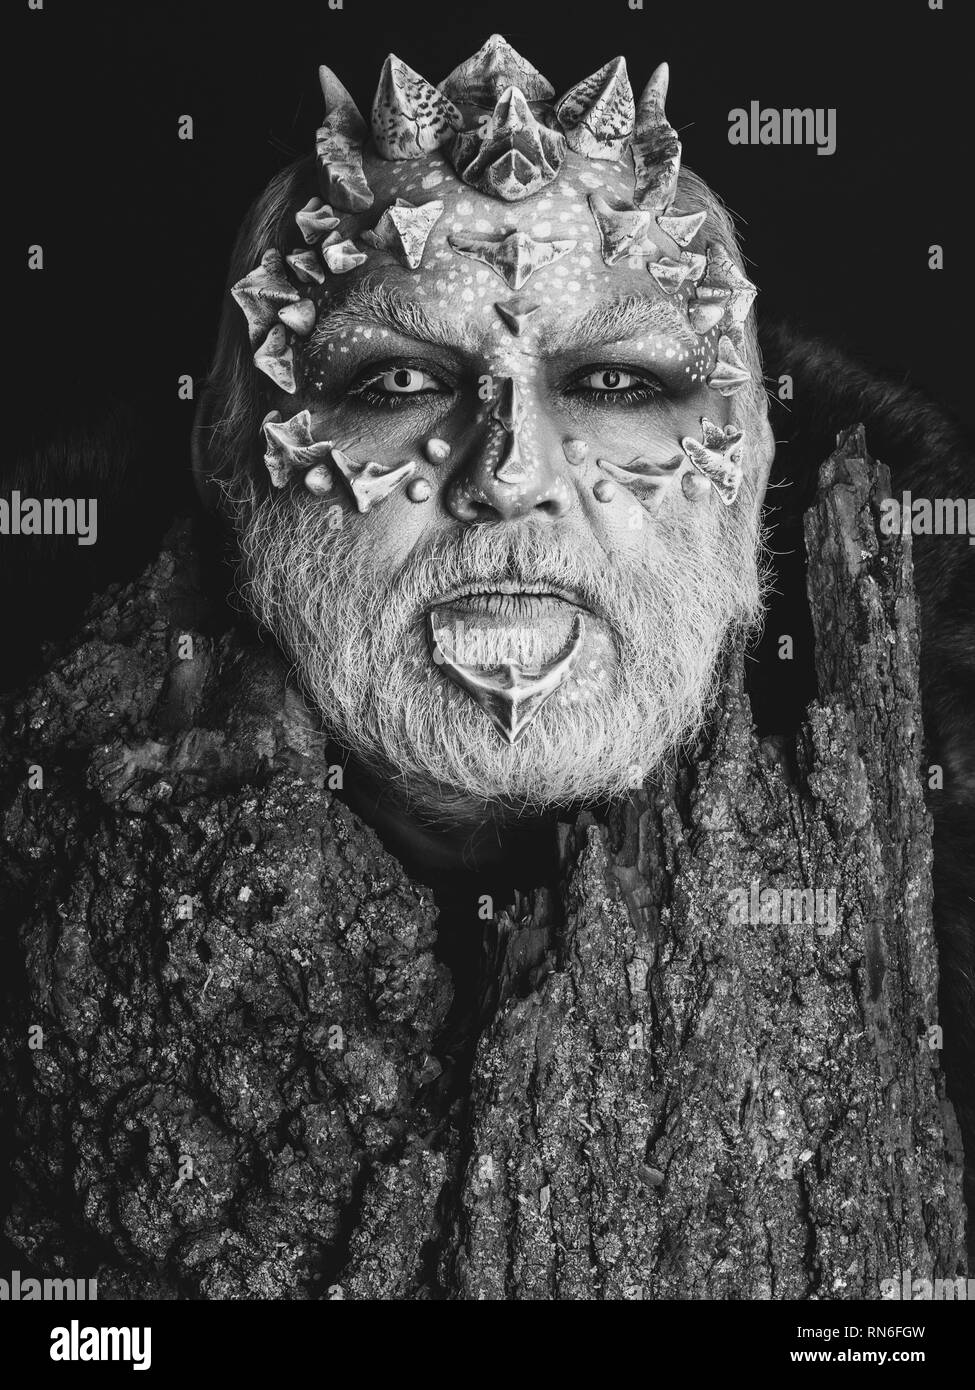 Man with dragon skin and bearded face - Stock Image